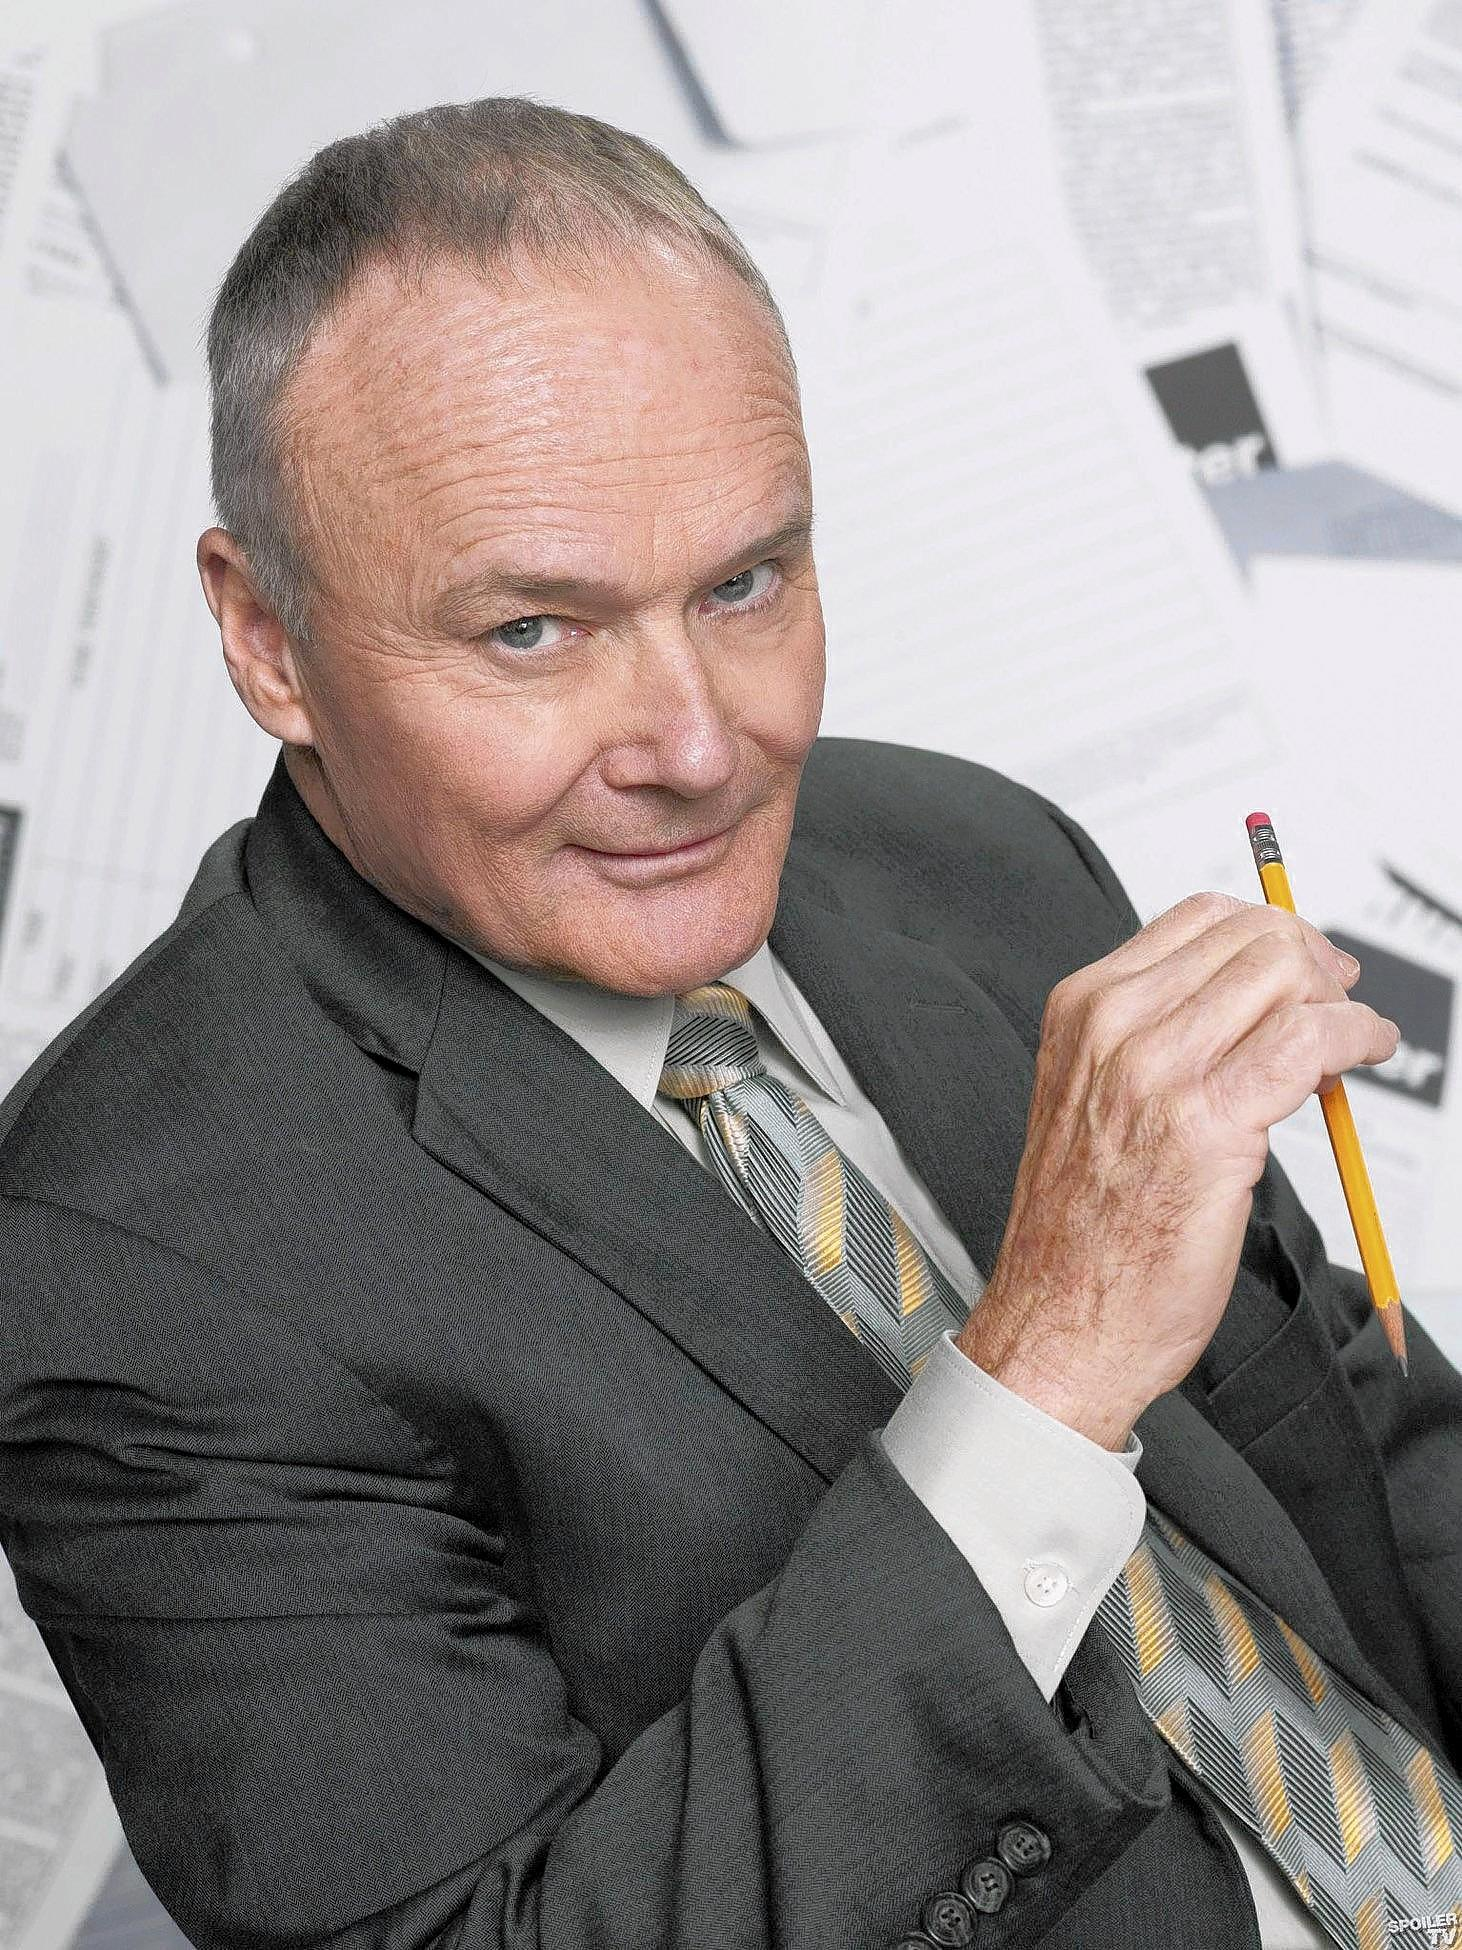 Creed Bratton, former guitarist of The Grass Roots and star of TVs show 'The Office,' will perform at Sellersville Theater on Sunday.